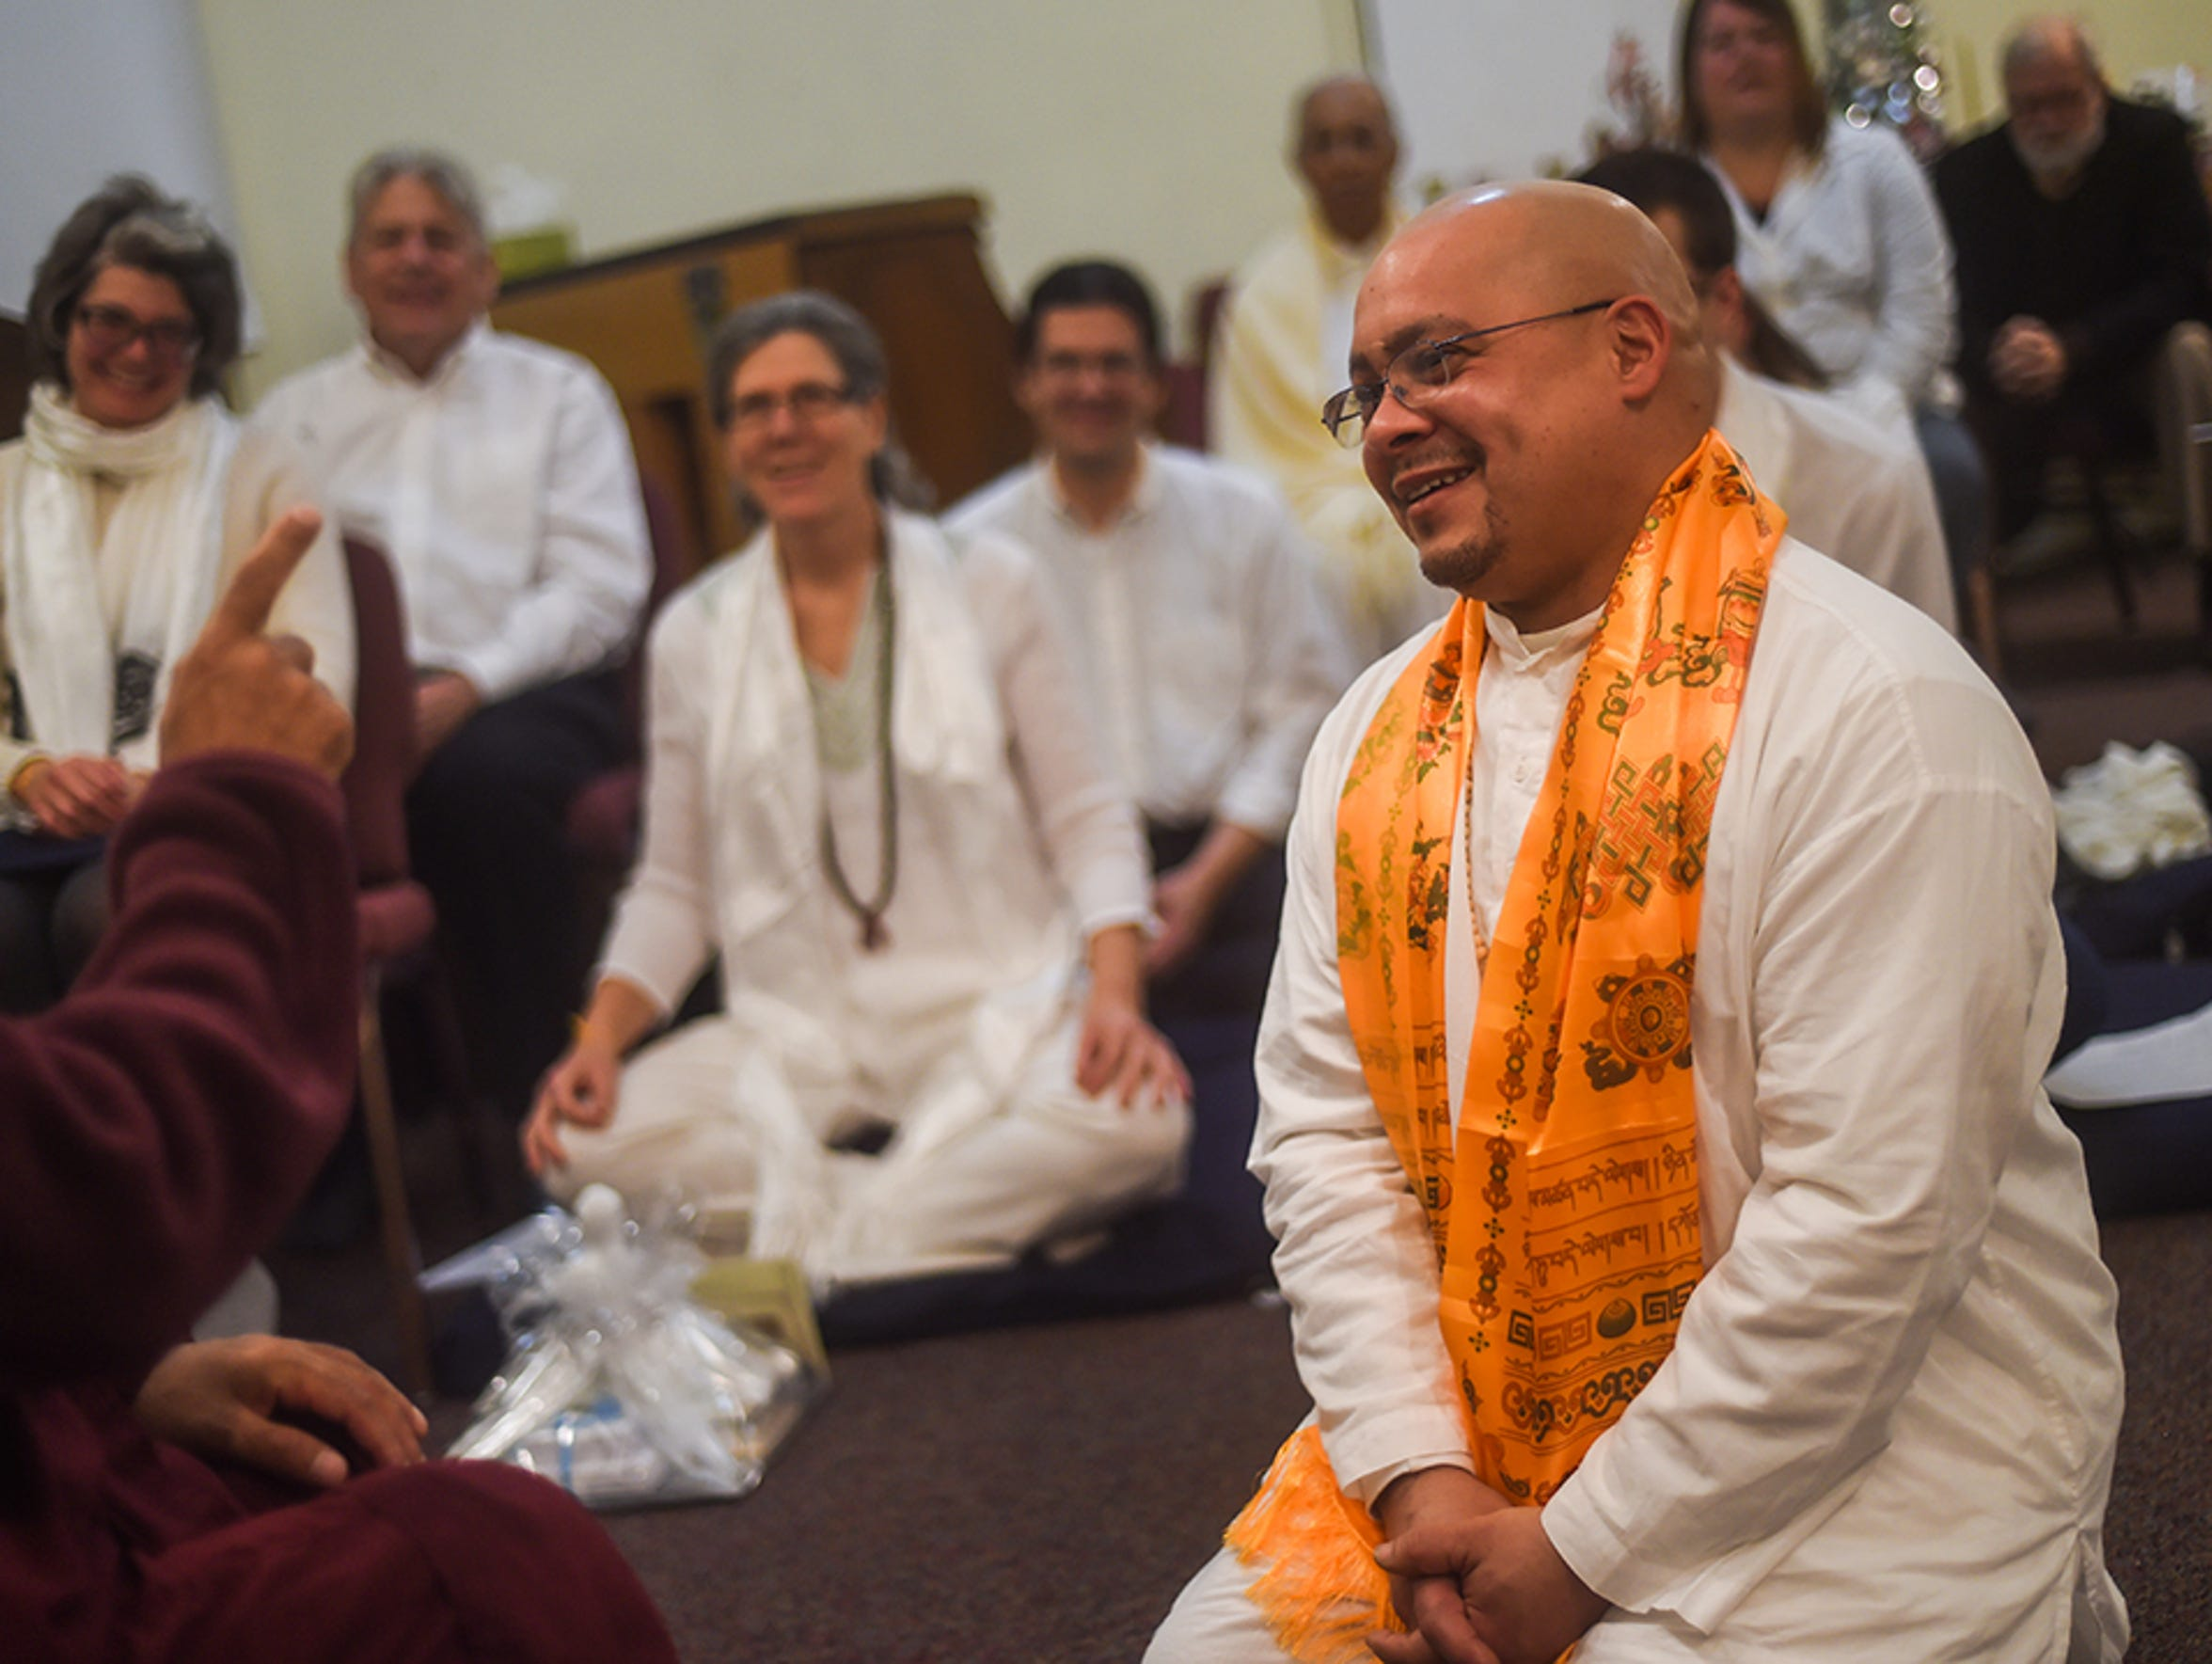 Angel Correa smiles while listening to Bhante Sujatha